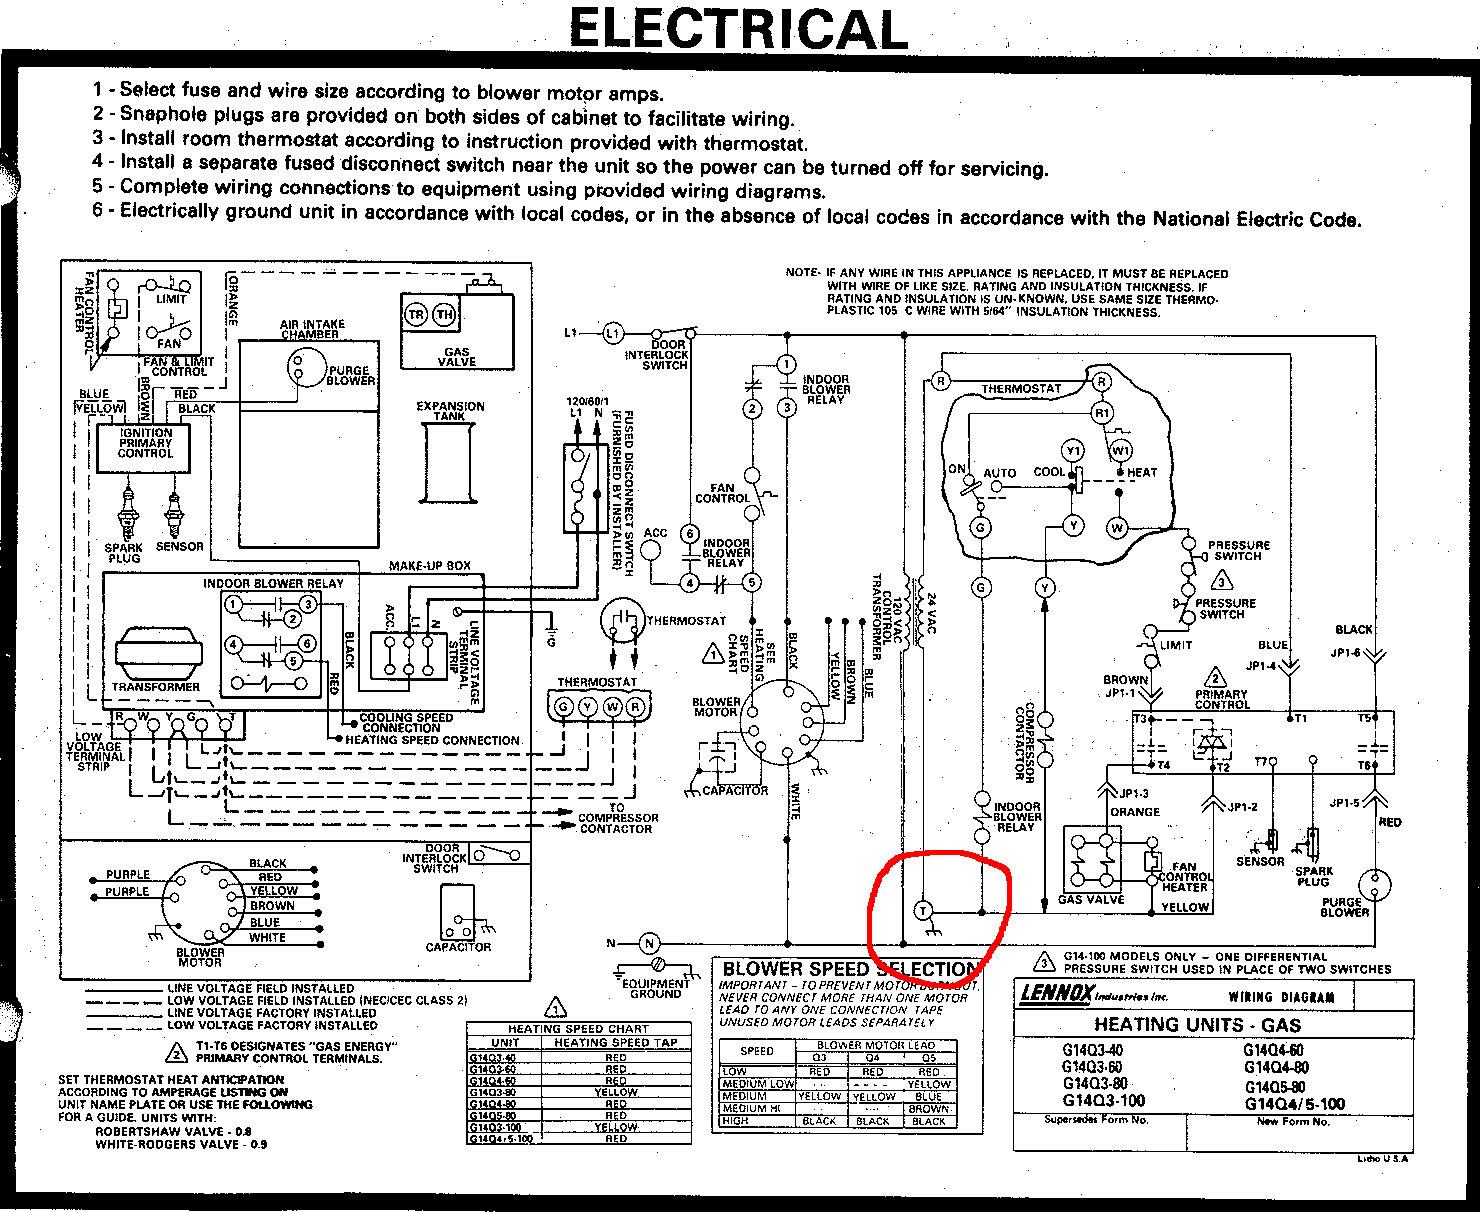 mobile home furnace wiring diagram 1996 ford explorer radio honeywell oil get free image